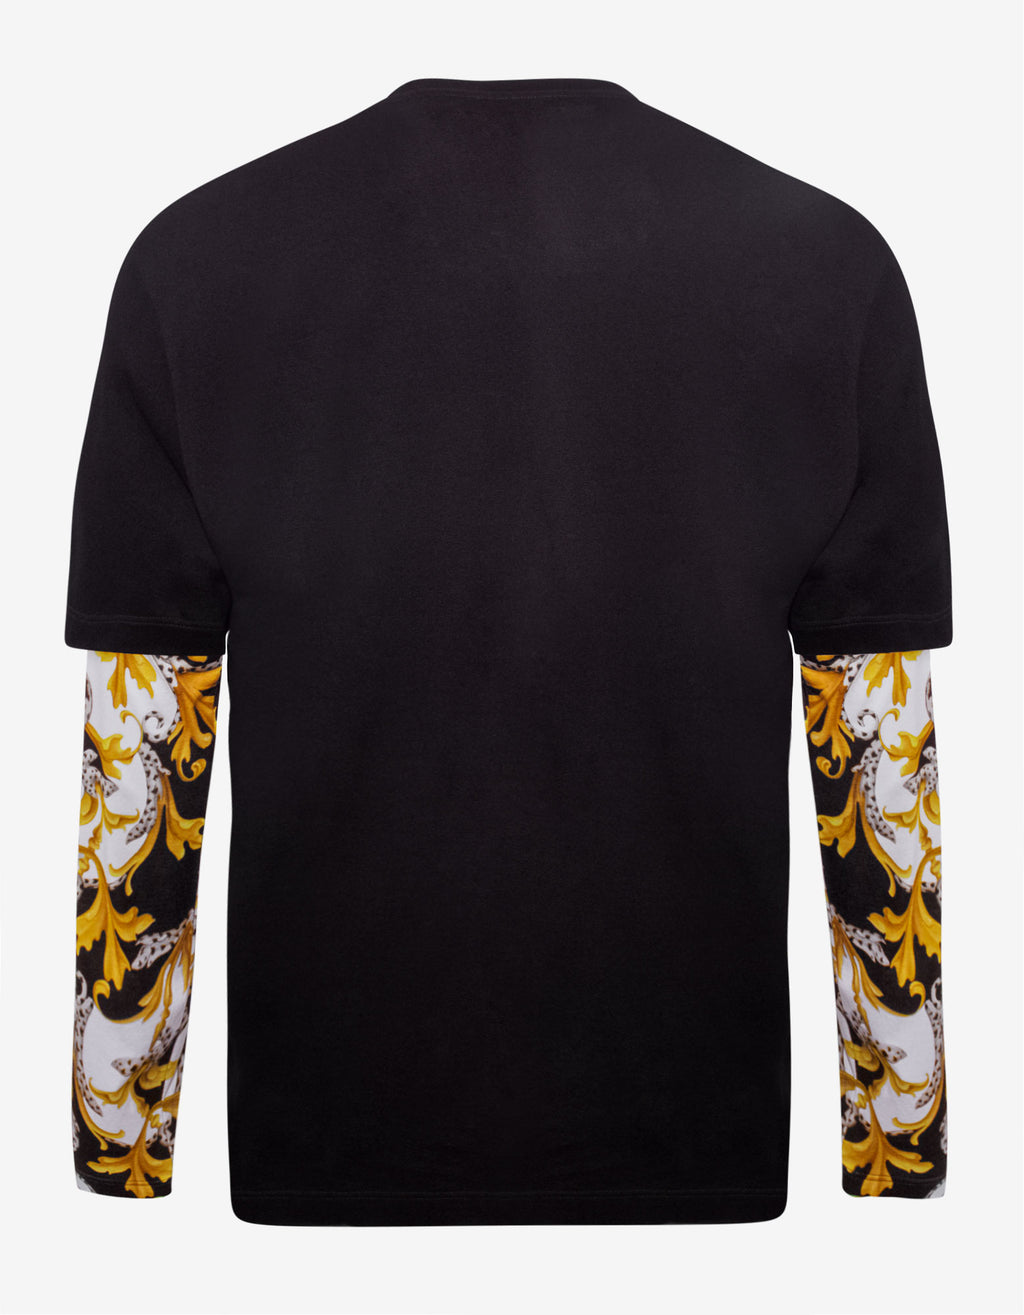 Black Contrast Long Sleeve T-Shirt